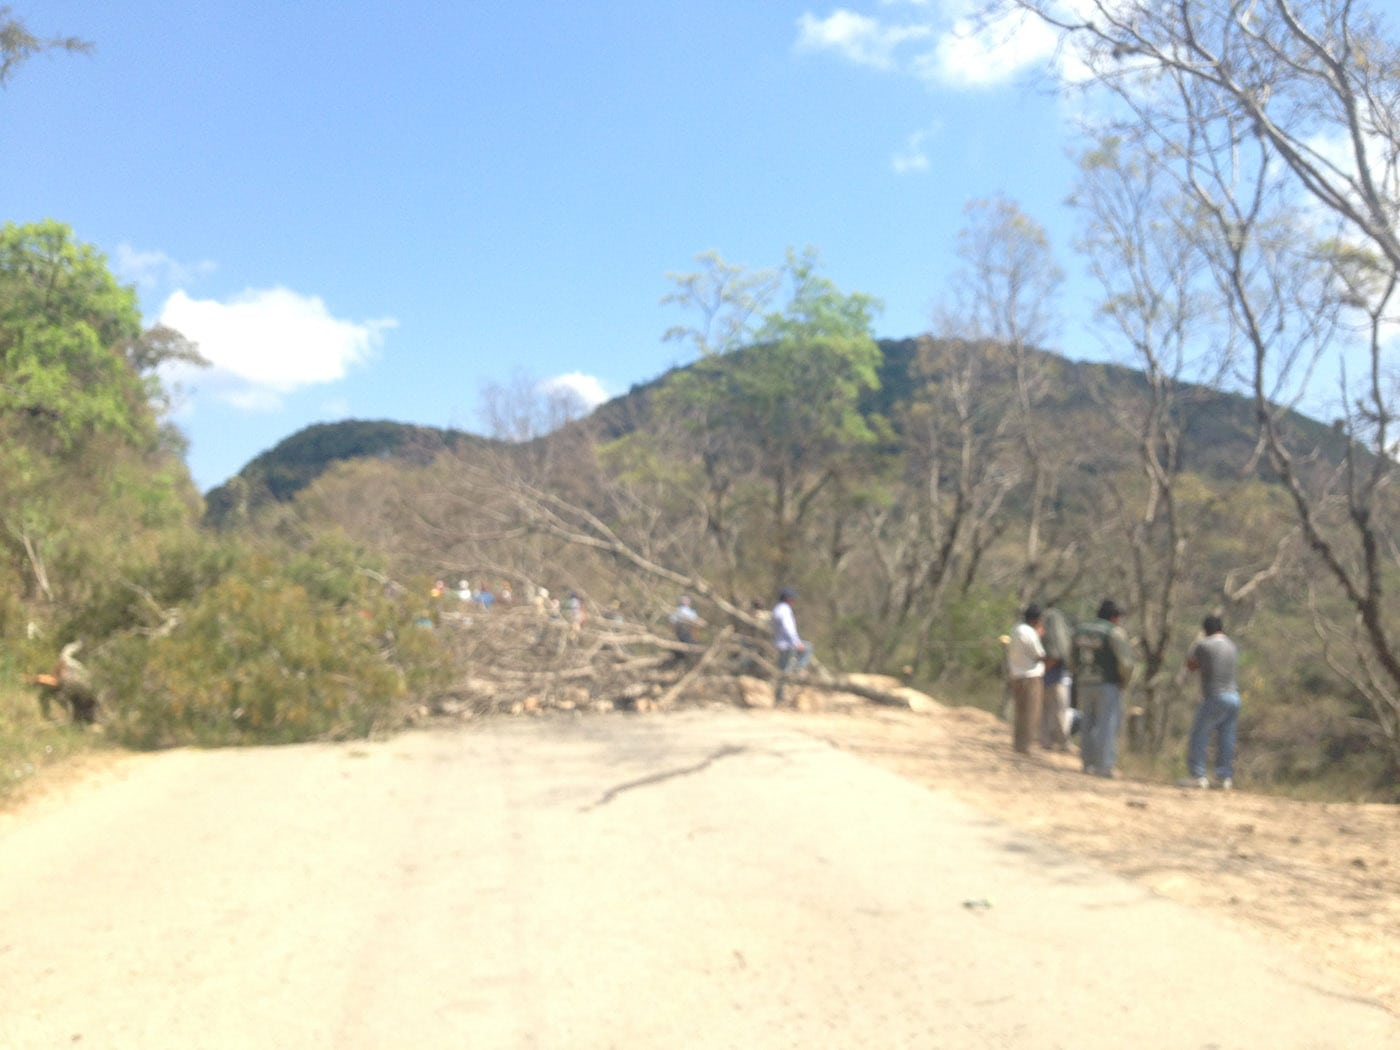 Road block in Samaipata, Bolivia